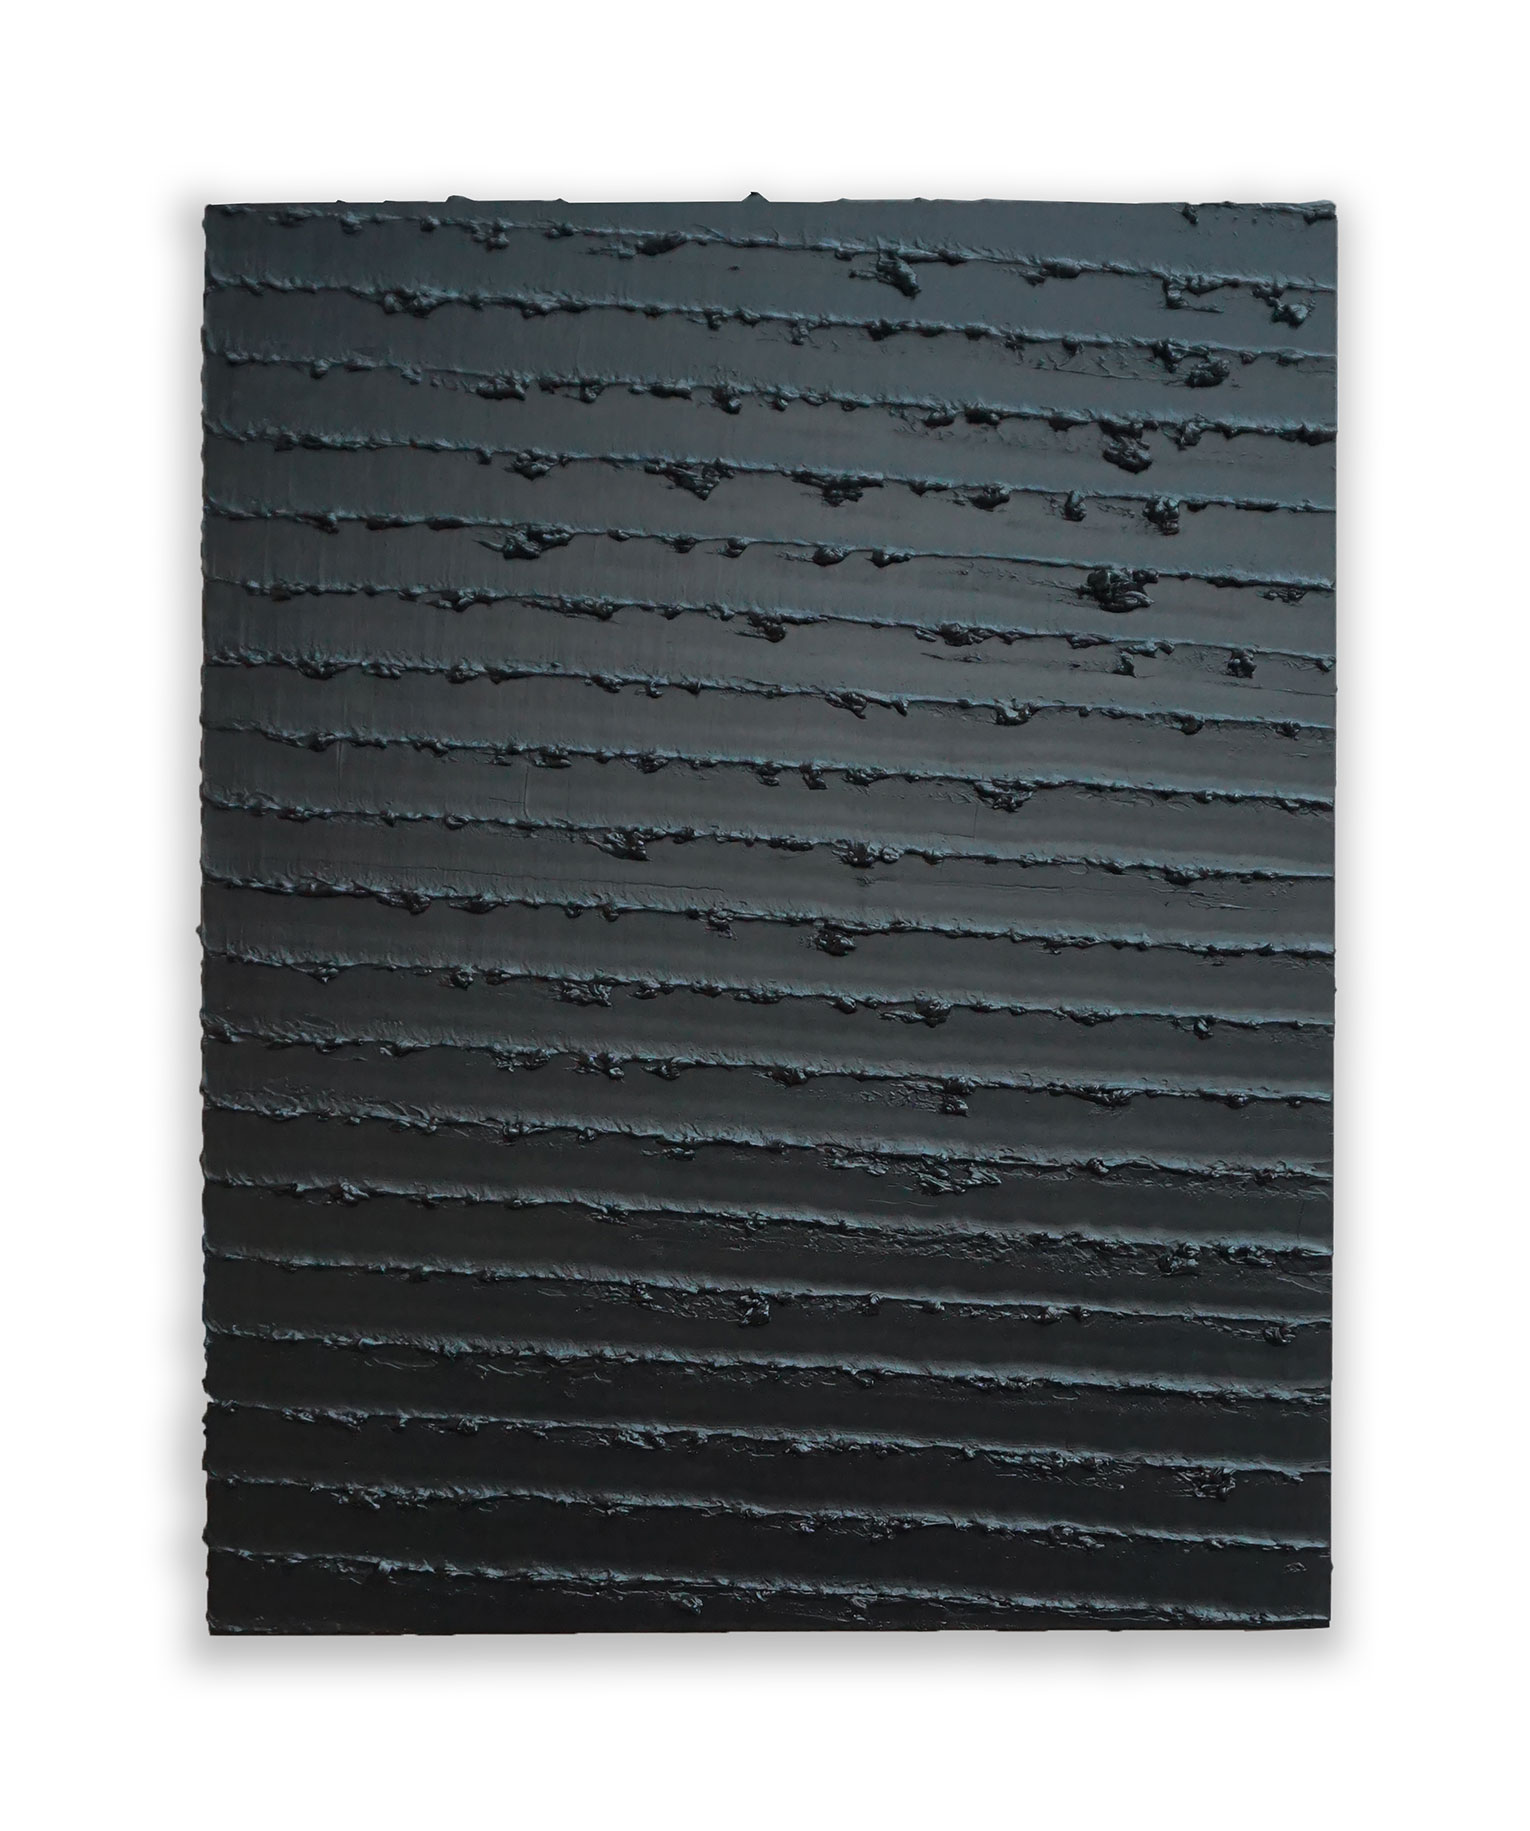 <b>Title: </b>Days I lived a world of night. V<br /><b>Year: </b>2019<br /><b>Medium: </b>Oil on birch ply panel<br /><b>Size: </b>50 x 40cm